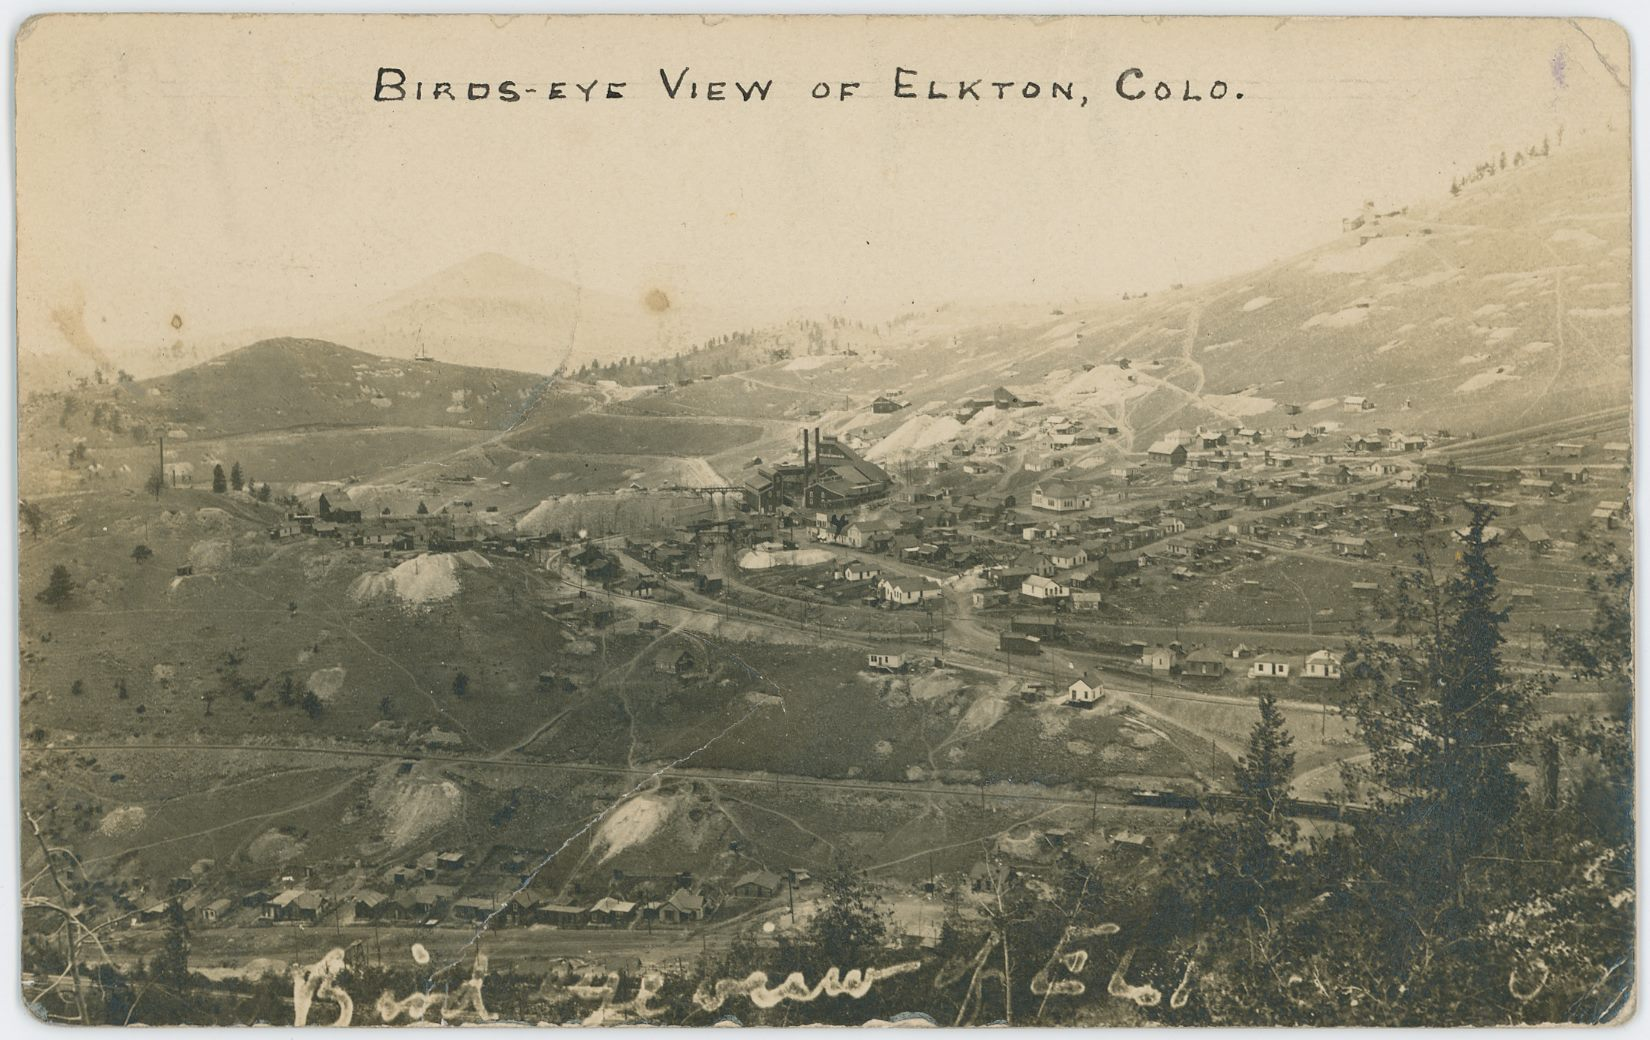 While the image quality is not that great due to the age and distance and all that, it still is a very important image to have! I struggle a little dating it as while it has a post stamp of 1908, I am unable to find the switchback from the M.T. up to the coal bins of Elkton Mine, which is shown on a USGS topographic map dated 1902/1903, which together with the showing of the Low Line which dates this after 1900, should narrow the timeframe down quite much, but the Elkton Mine structures gives me the impression this is way later then near 1900.    This due to the fact Sanborn 1900 (CC Sheet 17) shows a different structure here, while photo matches better with Sanborn 1908 map (CC Sheet 30). But then again, that later map fails to show some of the mine structures seen here so that suggest this view predates it. And as my USGS map show a spur not here I must admit that this is from a timeframe of less than 3-years. More research is needed.    Near bottom of this view lays a row of houses which forms the upper part of the settlement know as Eclipse, along Eclipse Gulch, stretching from about where F. & C.C. crosses the gulch and to around where the Economic Mill was further down the gulch at left, as far as I know.    The grade of the F. & C.C. is seen about 1/4 up from the bottom, with a passenger train near right-hand side, heading towards Cripple Creek. There are several mine operations seen below and above that grade, but my knowledge is way too limited to tell anything about any of them.    The town of Elkton is seen on the lower slope of Raven hill in the right-most half of the photo around middle of view top/down, where the large Elkton Mine makes up about center of this card, with the railroad grade of the M.T. running just left of the mine.    The Low Line is seen about 1/3 up from bottom near right-hand side, climbing the hill towards left and about middle top/down and about 1/3 in from left-hand side it changes directions and goes towards right, cross over the M.T. on trestle and passes the Elkton mine on the right side.    The Thompson large Shaft House (I think) is seen about center of view top/down and about 1/5 in from left-hand side, sadly I don't know of any Sanborn map of this structure, not that I can recall at the time of this writing [08.08.2017].    There is also another mine structure at right foreground of the Thompson, left of the Low Line grade, but I dare not guestimate a name for that mine, nor do I dare take a stab at the name of the ones seen inside the town of Elkton either. One is easy to spot, just right of the mainline of M.T. with a large dump area, the other is more hidden among houses, still with a dump though. One day I hope to learn all this, one day.    Raven Hill has it shares of mines as well, but the one I sort of care about is the Bostwick Shaft House, seen about 1/3 down from top and slightly right of center of view sideways, up from right-hand side of the Elkton mine.